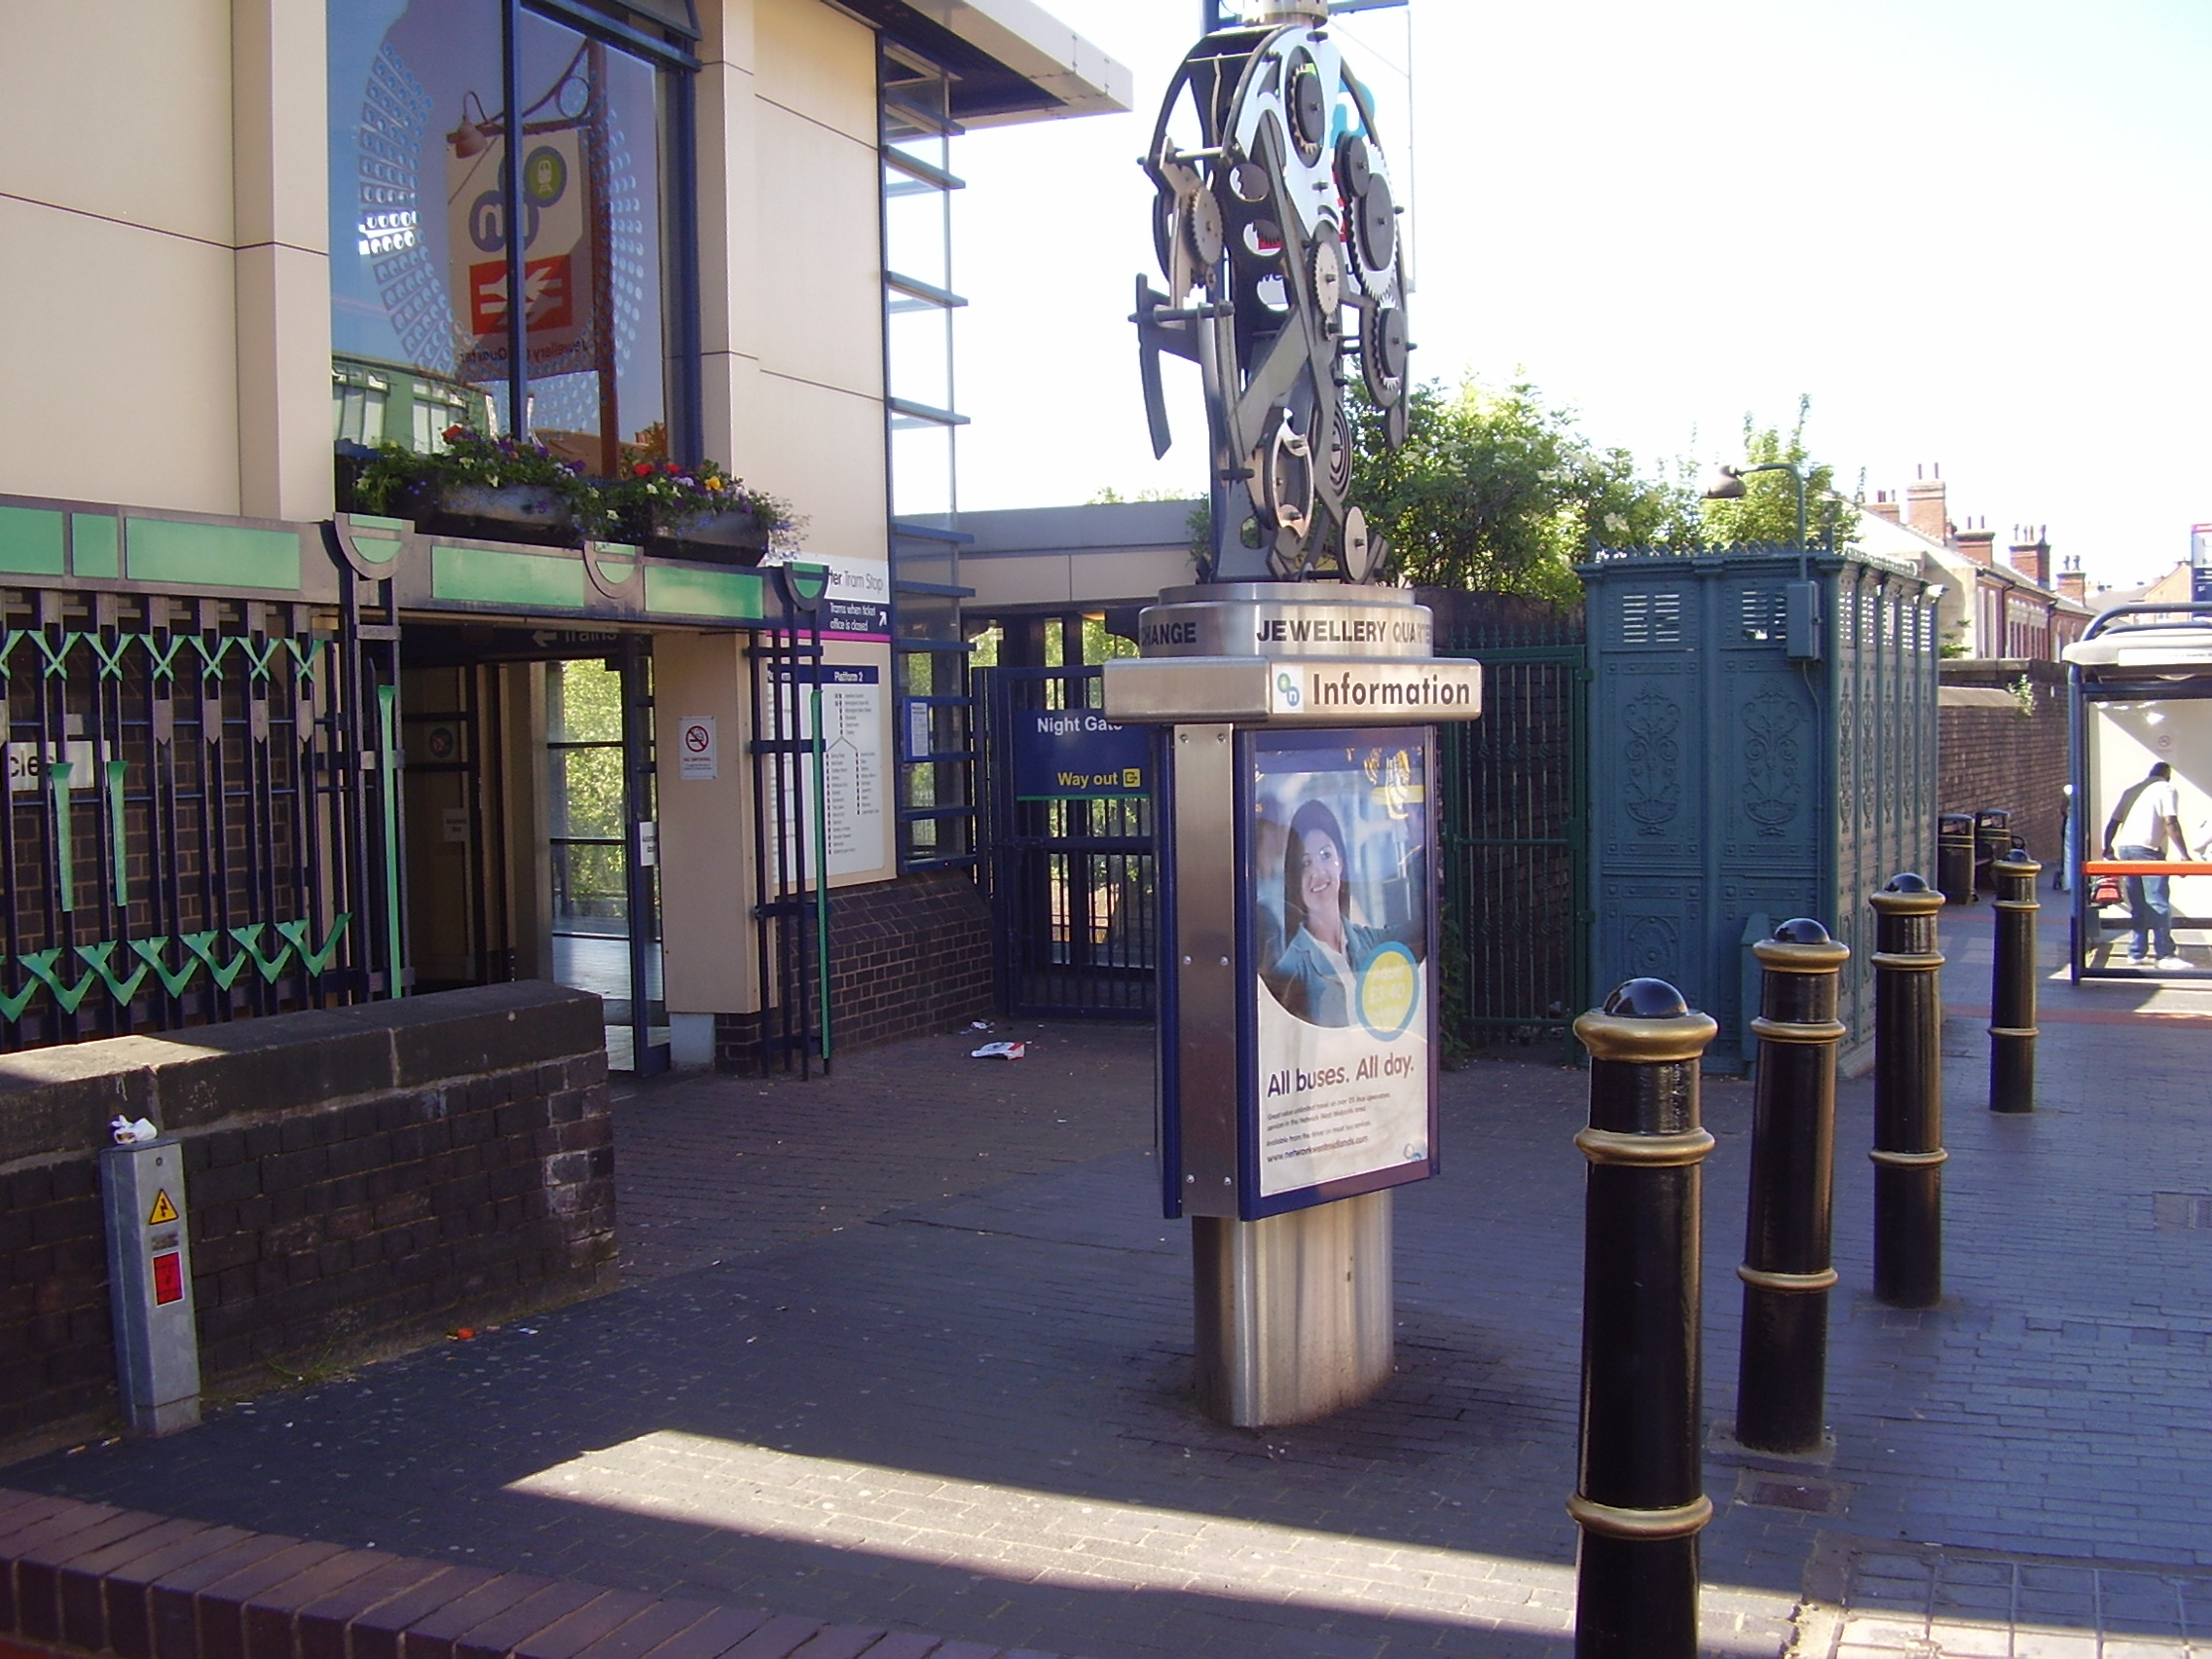 Jewellery Quarter Station Vyse Street 2008